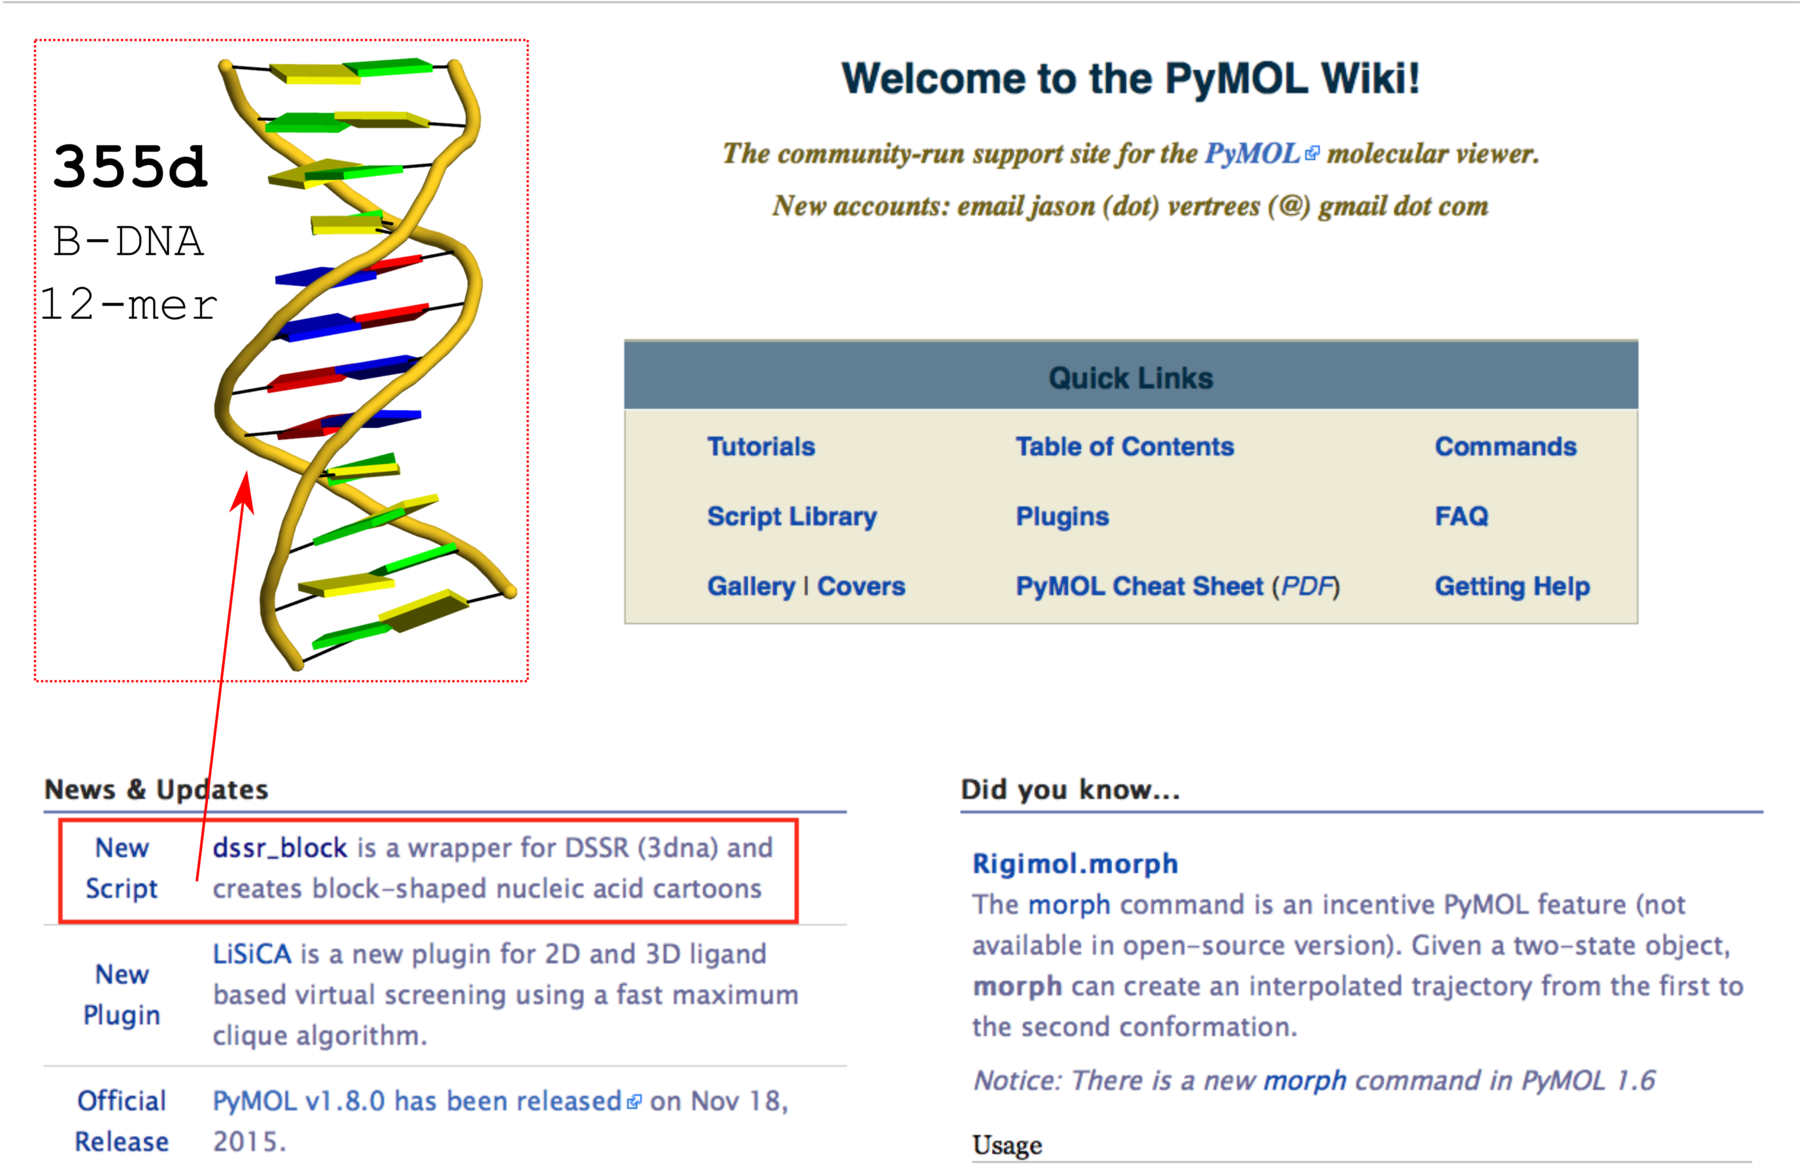 dssr_block news item on PyMOLWiki